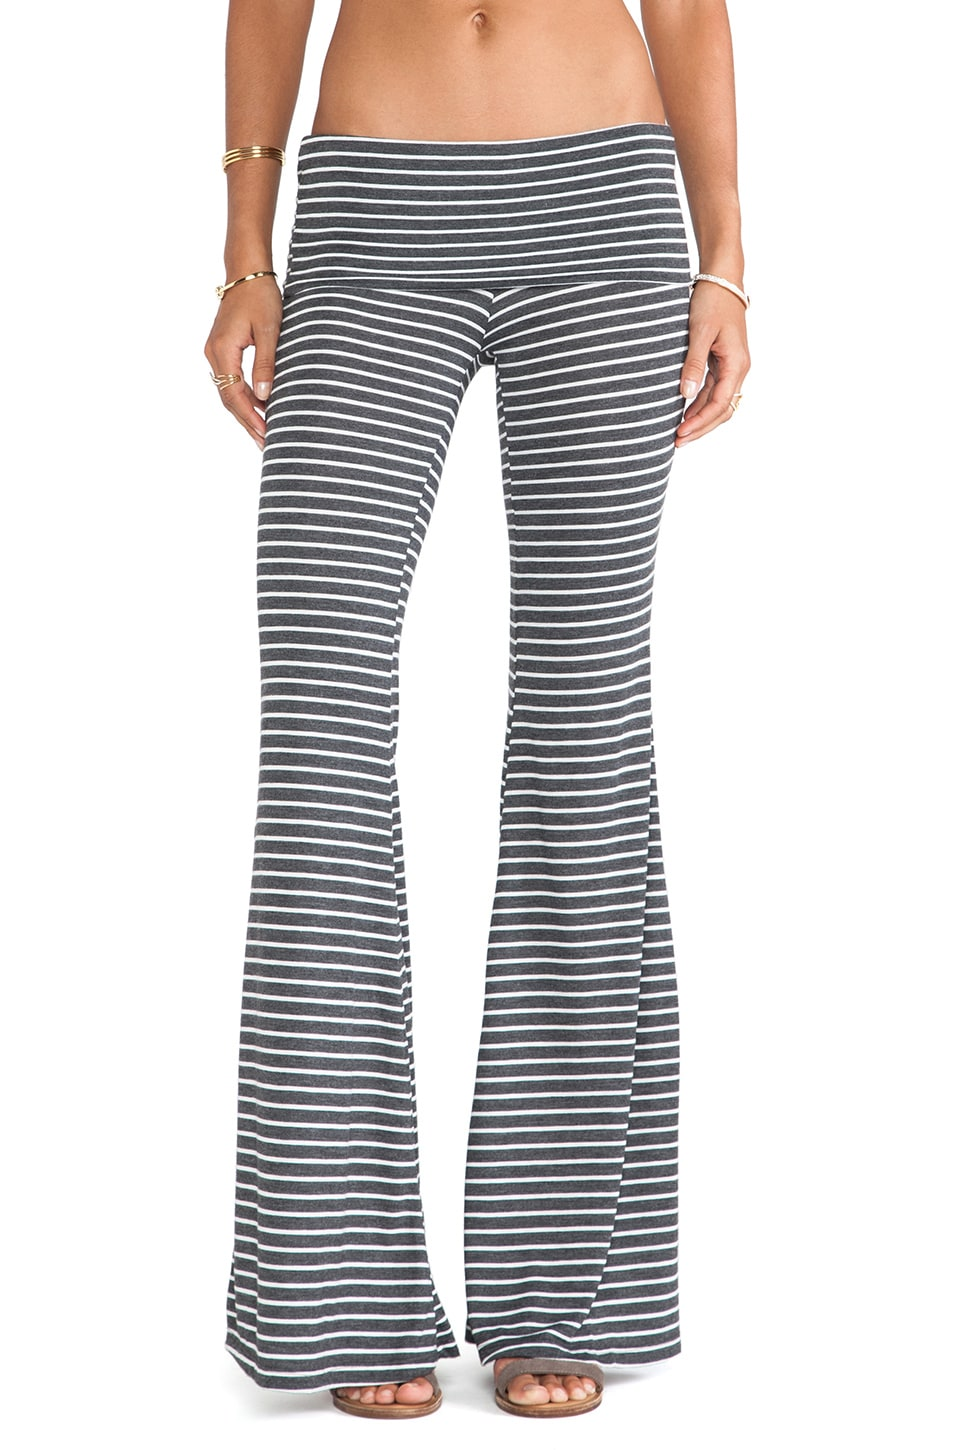 De Lacy DeLacy Austri Pant in Grey & White